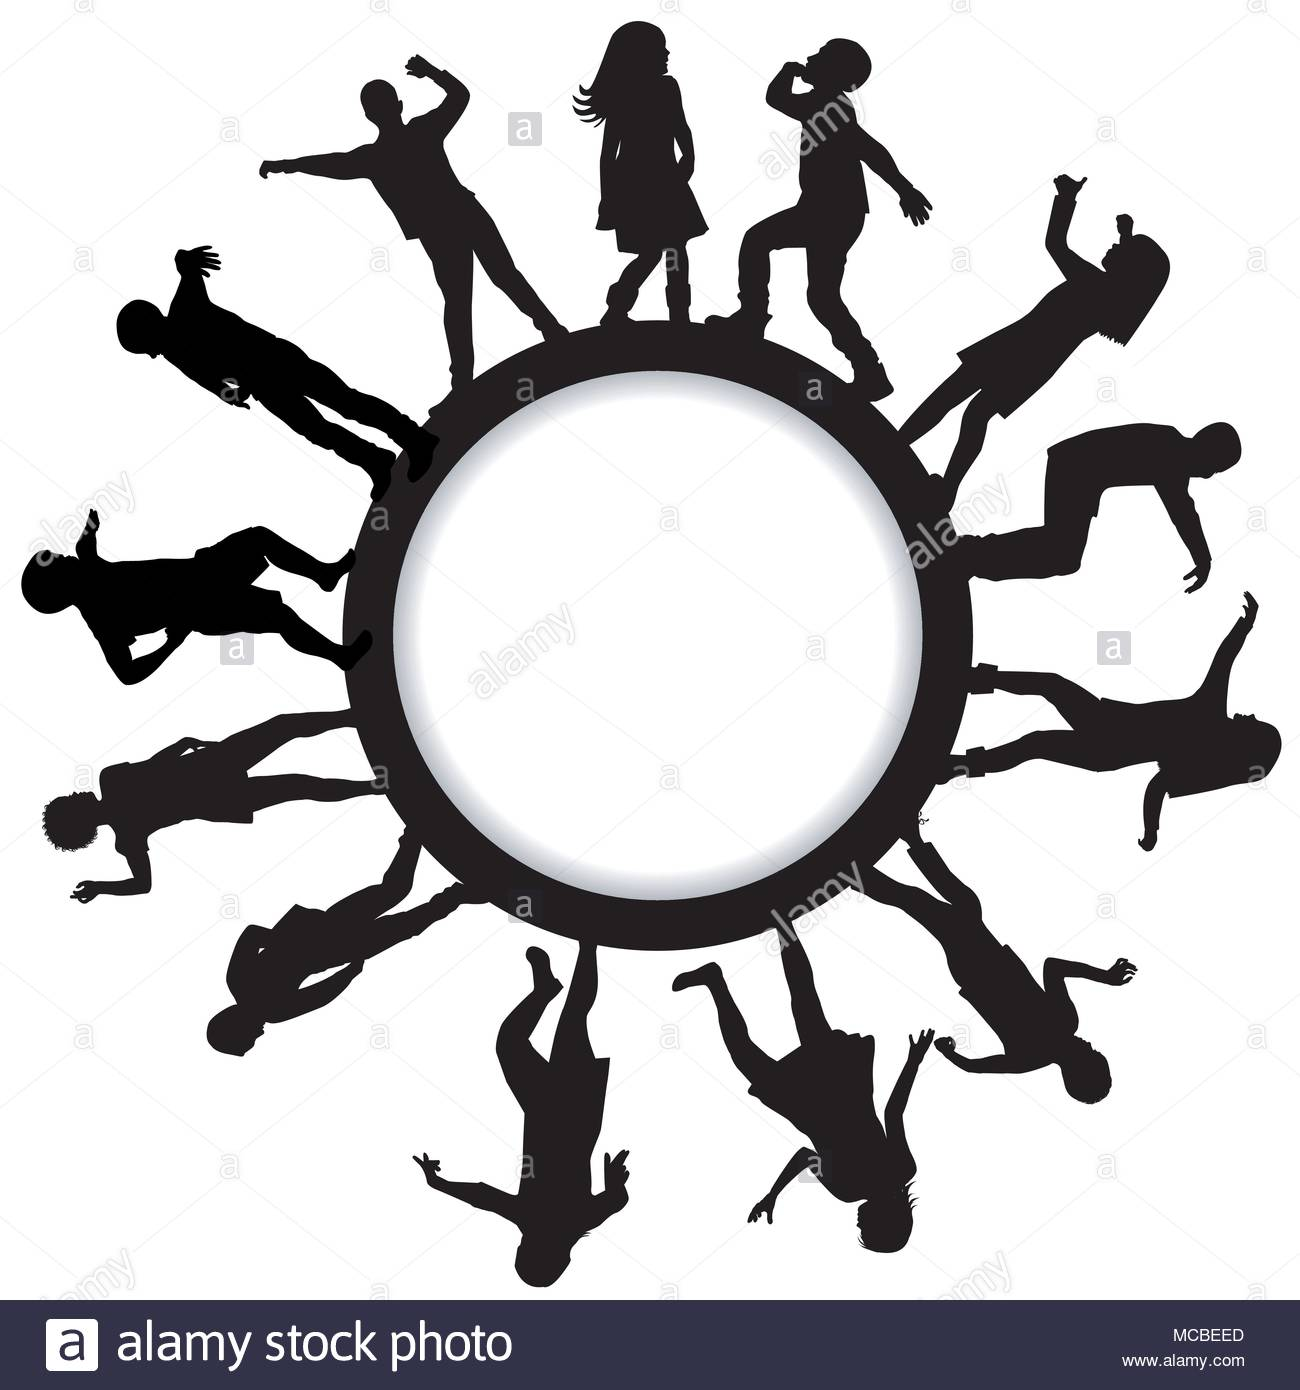 1300x1390 Circle Of Children Silhouette Stock Photos Amp Circle Of Children